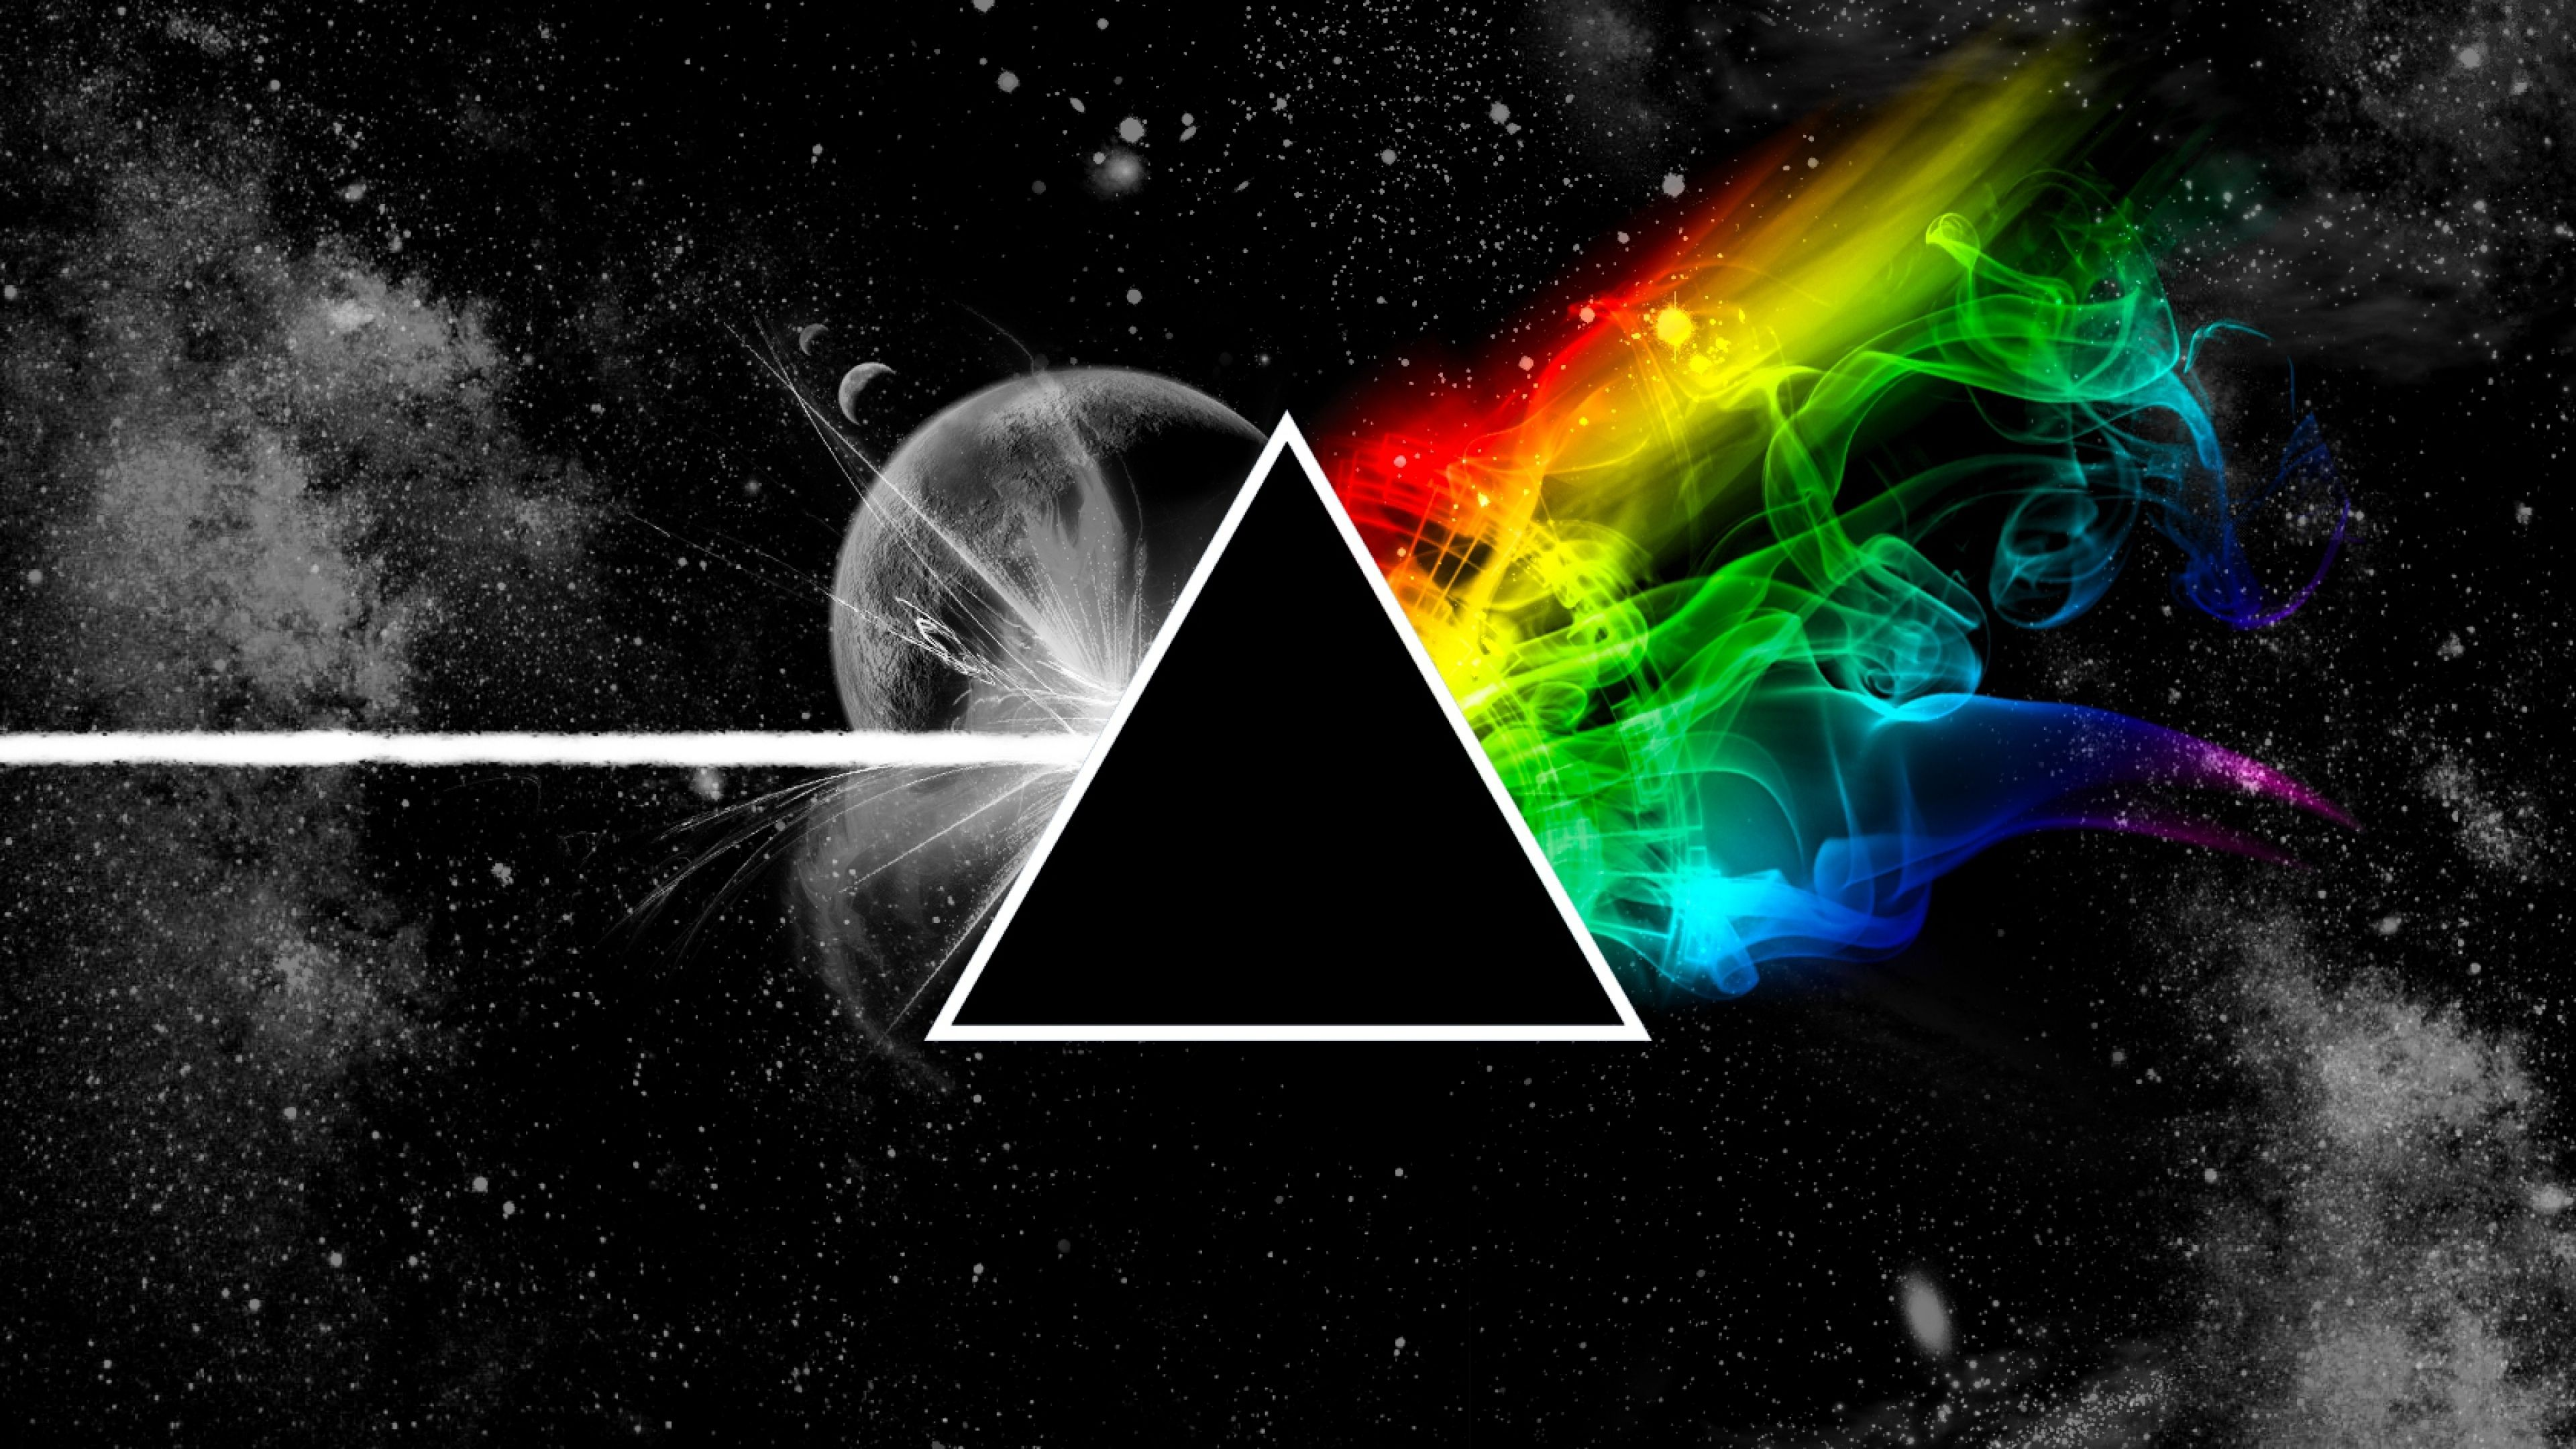 Ultra HD Wallpapers HD Wallpapers Backgrounds of Your Choice | HD Wallpapers | Pink floyd albums ...